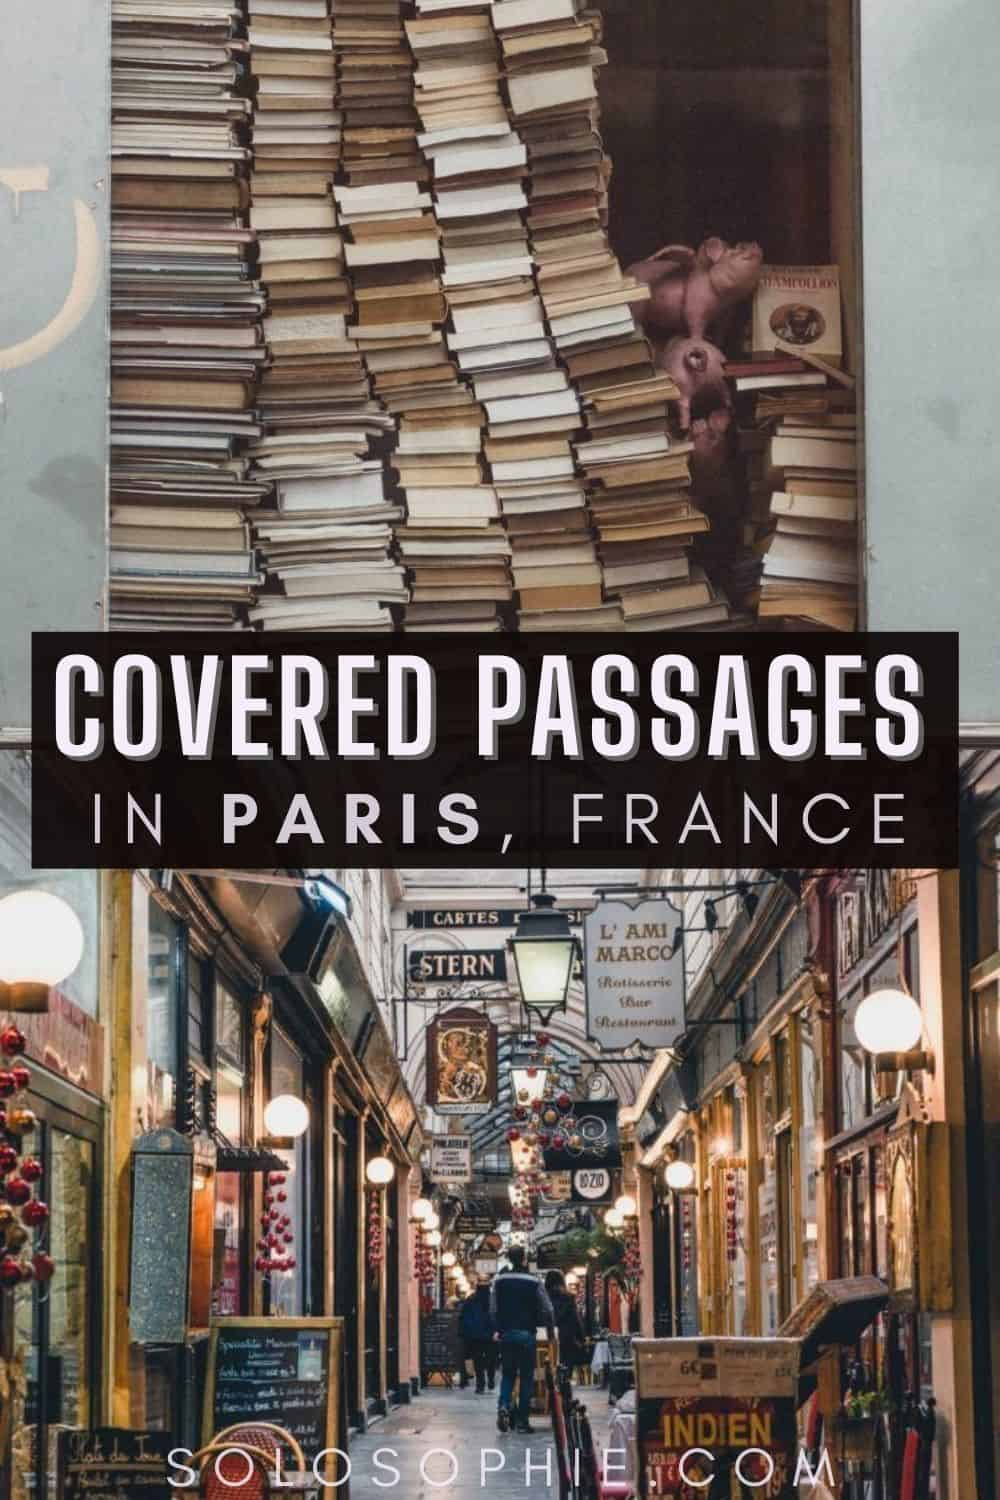 Off the beaten path Paris/ A Complete Guide to the Best of the Secret Covered Passages of Paris France Europe